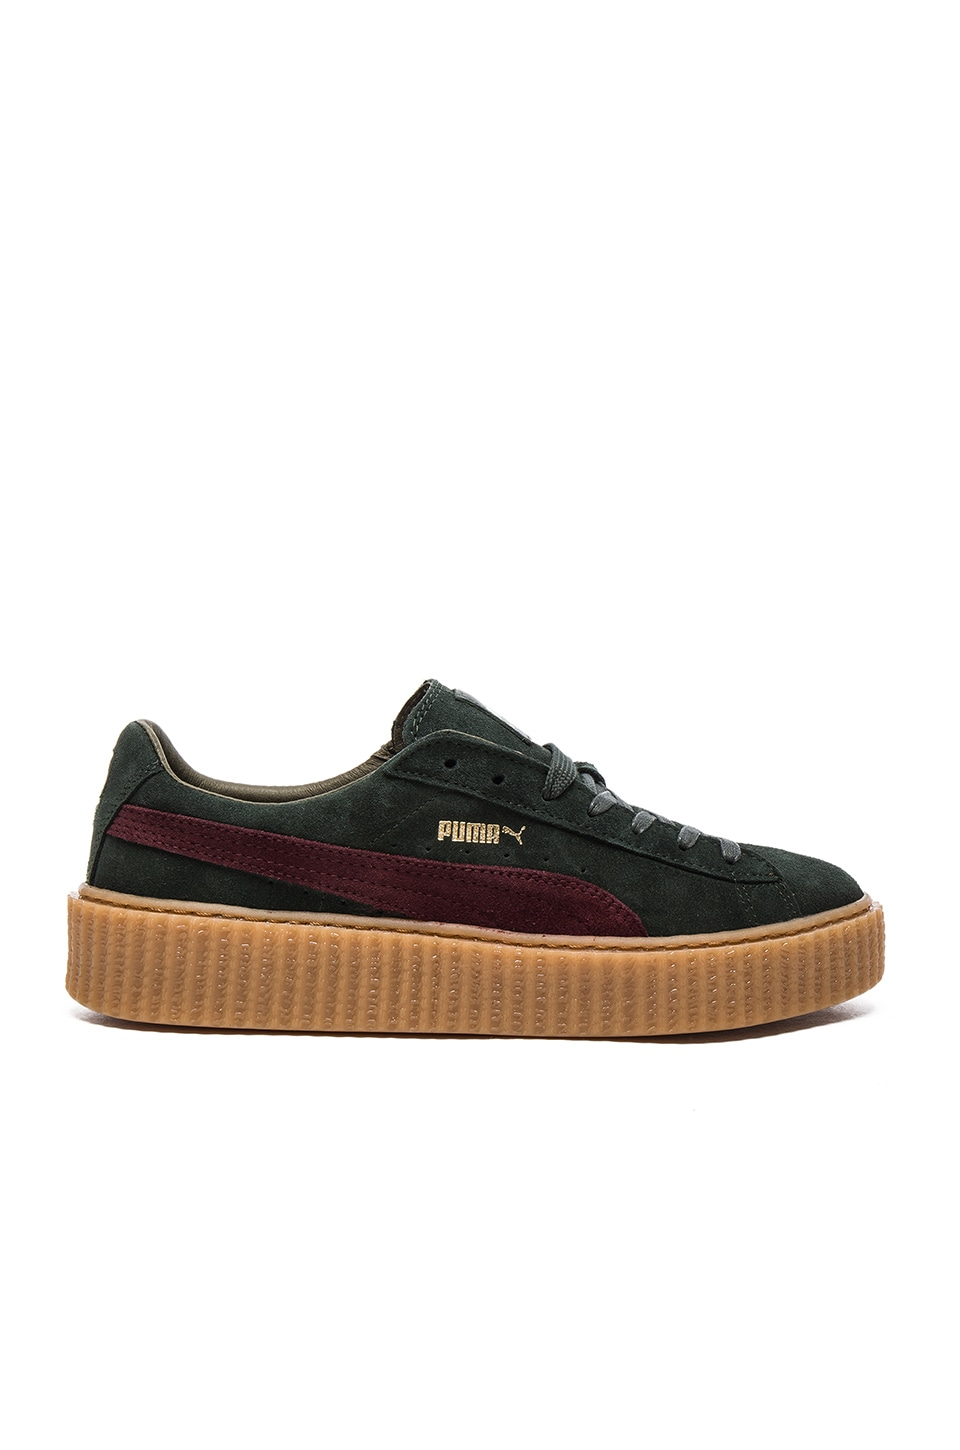 new style & luxury sale usa online great look x Rihanna Suede Creepers U